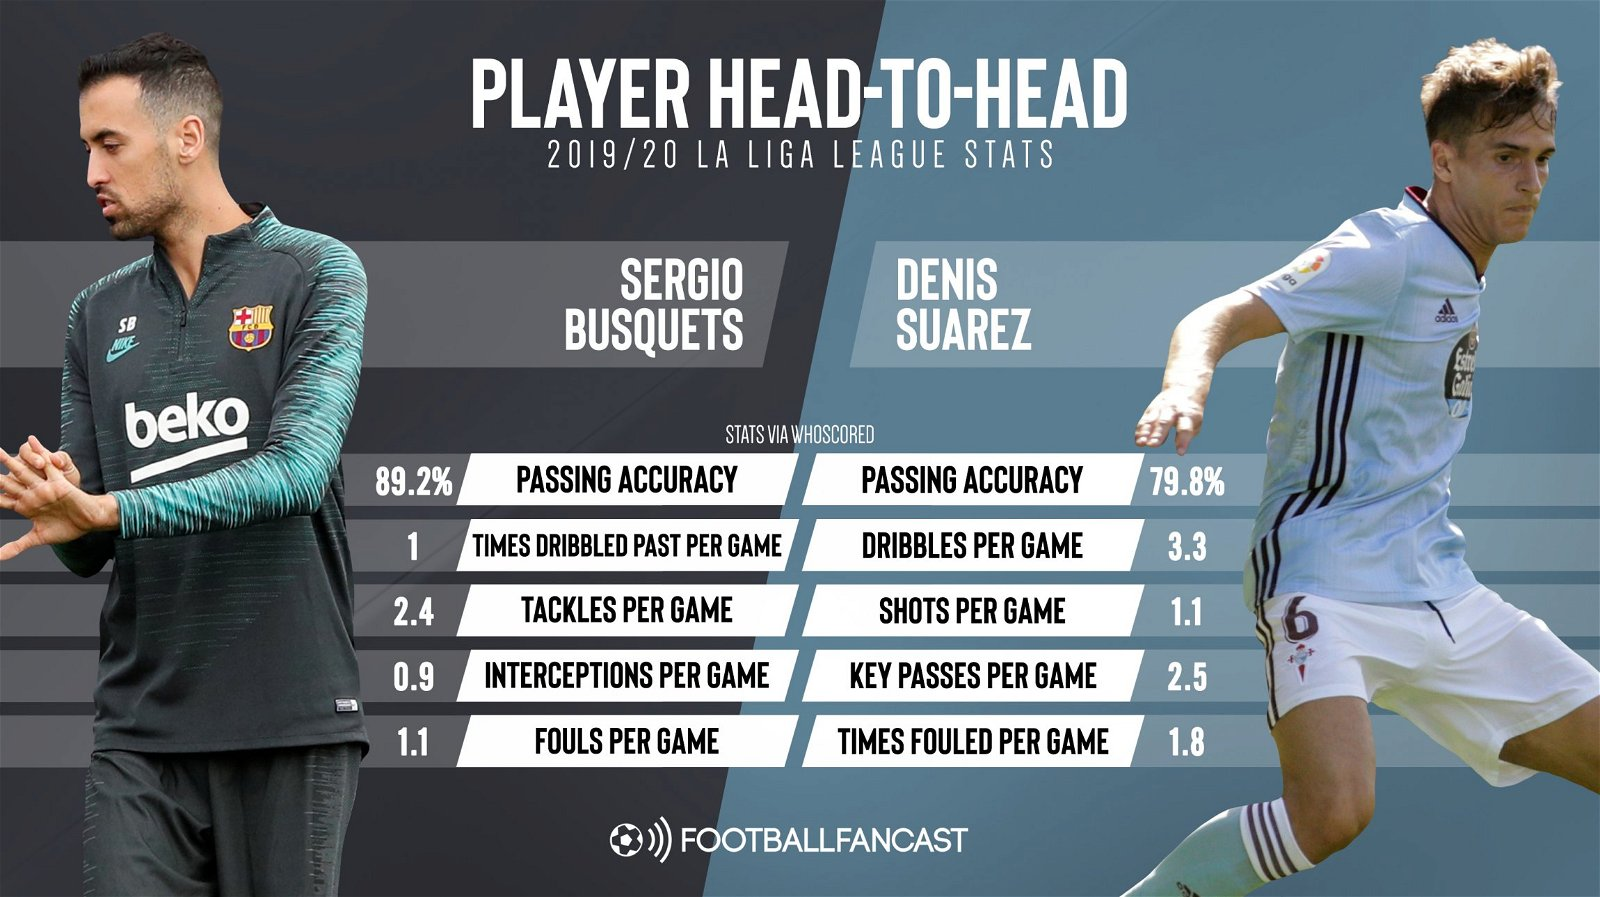 Sergio Busquets vs Denis Suarez - Sergio Busquets must thwart the threat of a familar face to Barcelona on Saturday - opinion